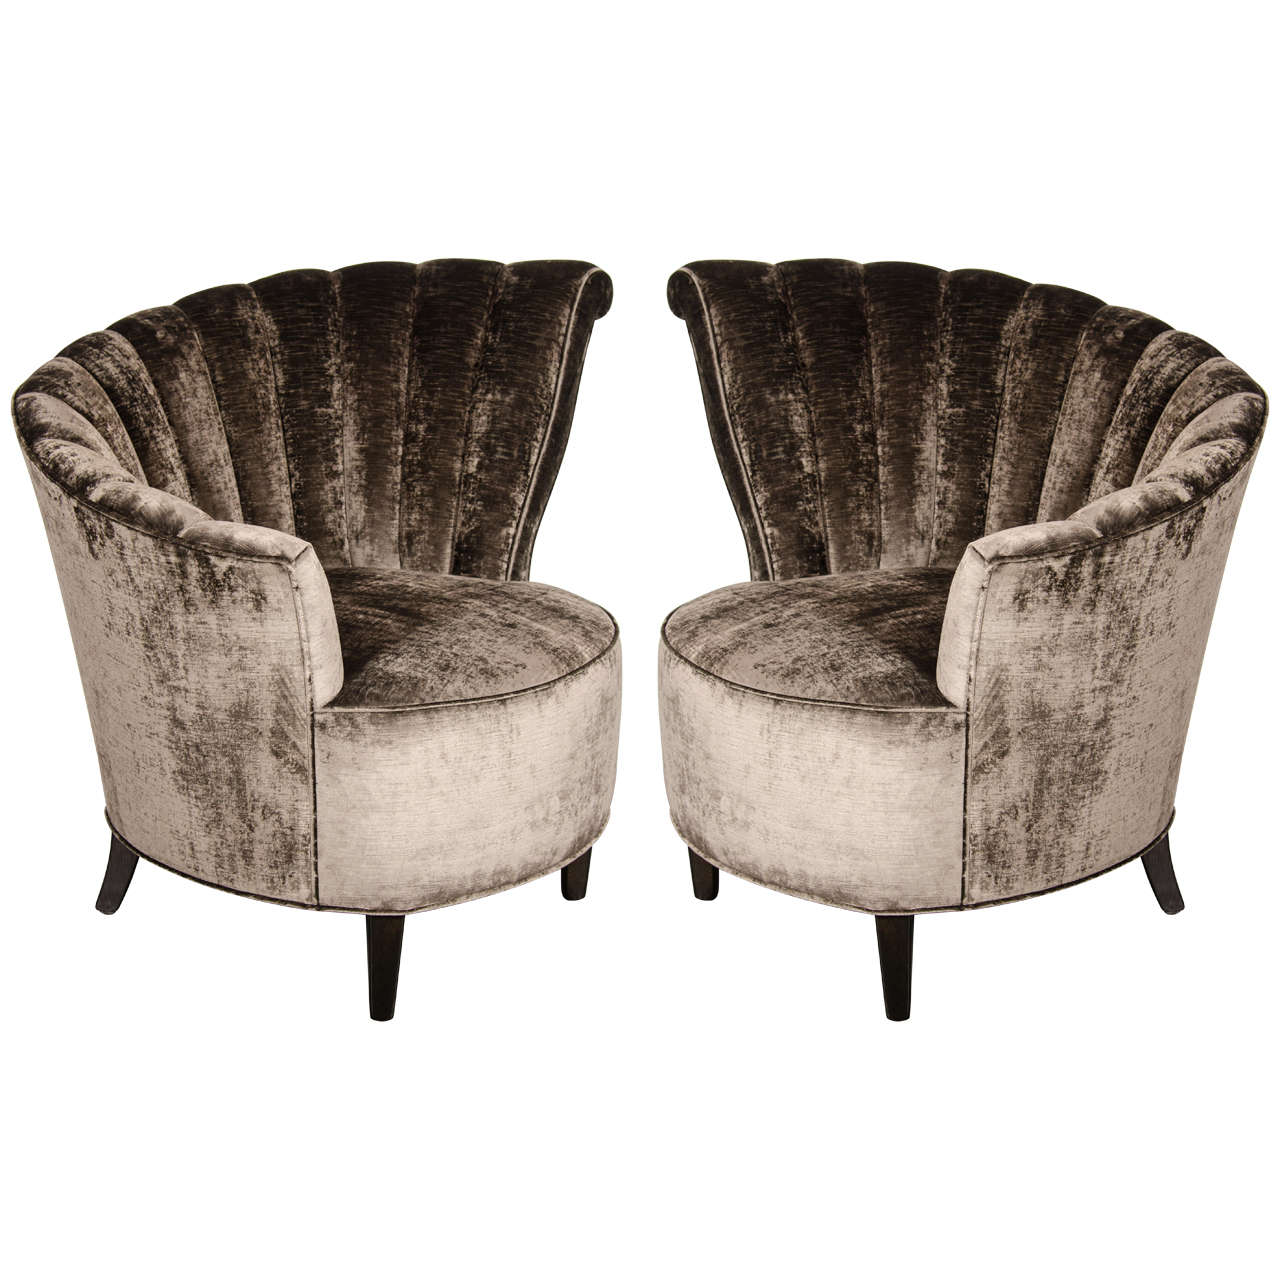 New Glamorous Pair of 1940's Asymmetrical Fan Back Chairs in Smoked  GP85